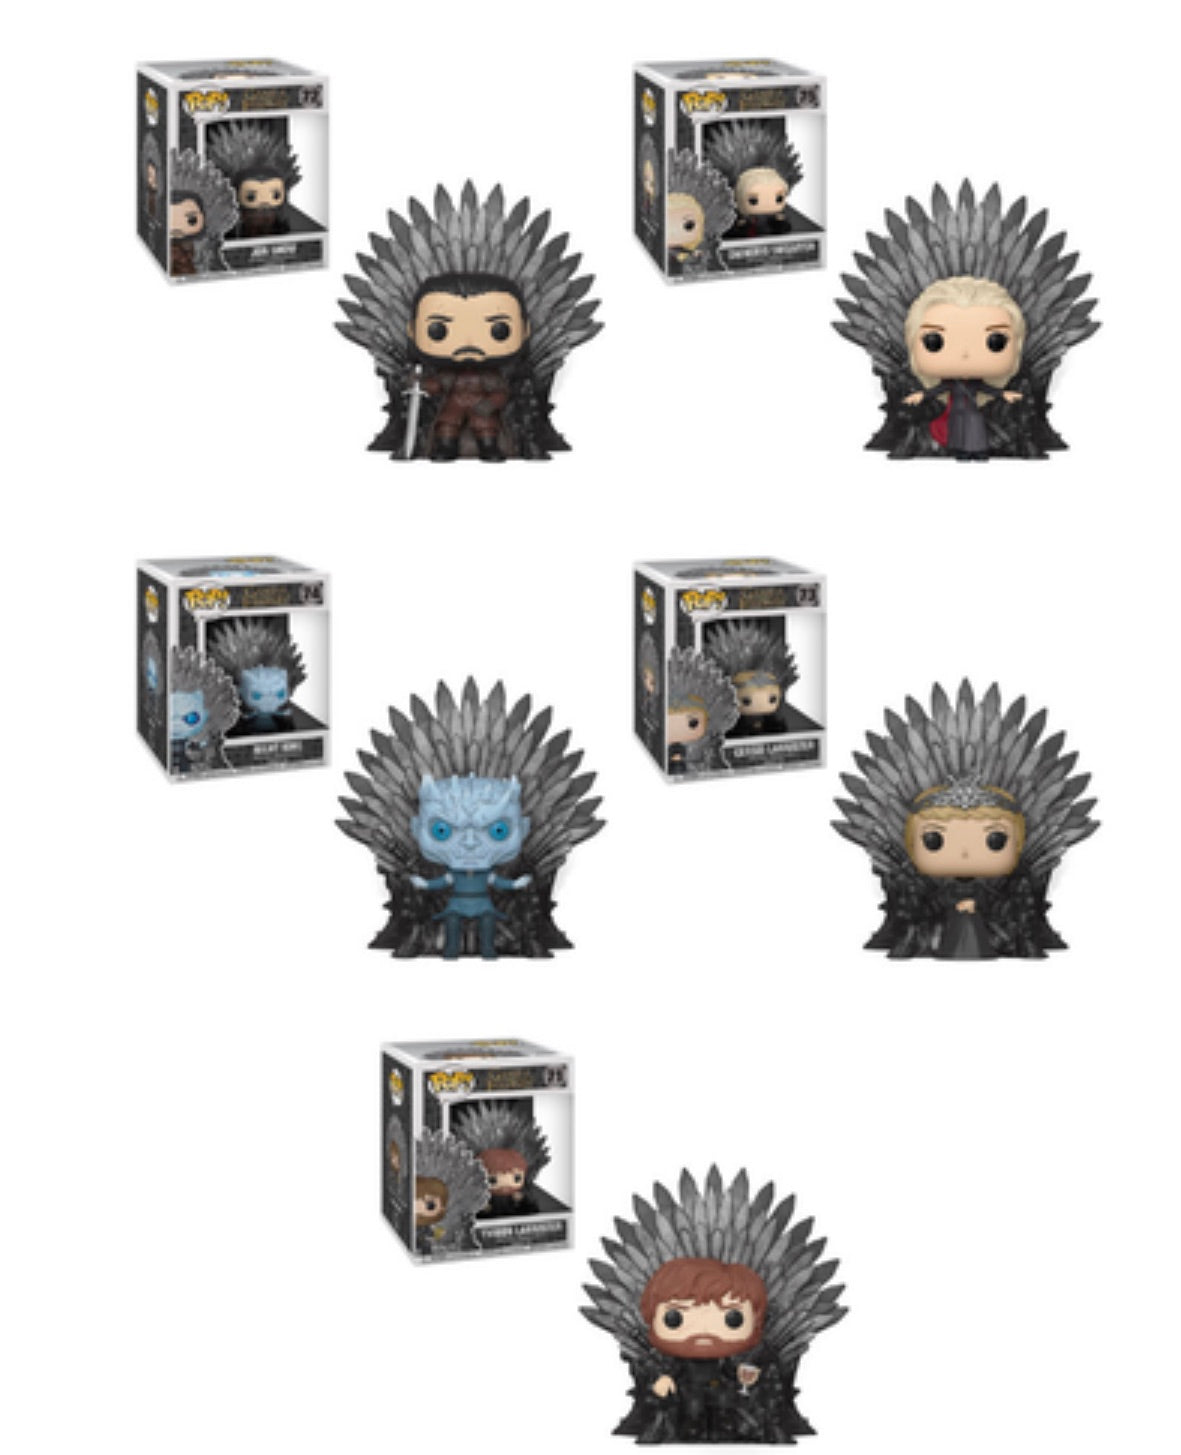 GAME OF THRONES FUNKO POP! COMPLETE SET OF 5 IRON THRONES (PRE-ORDER)